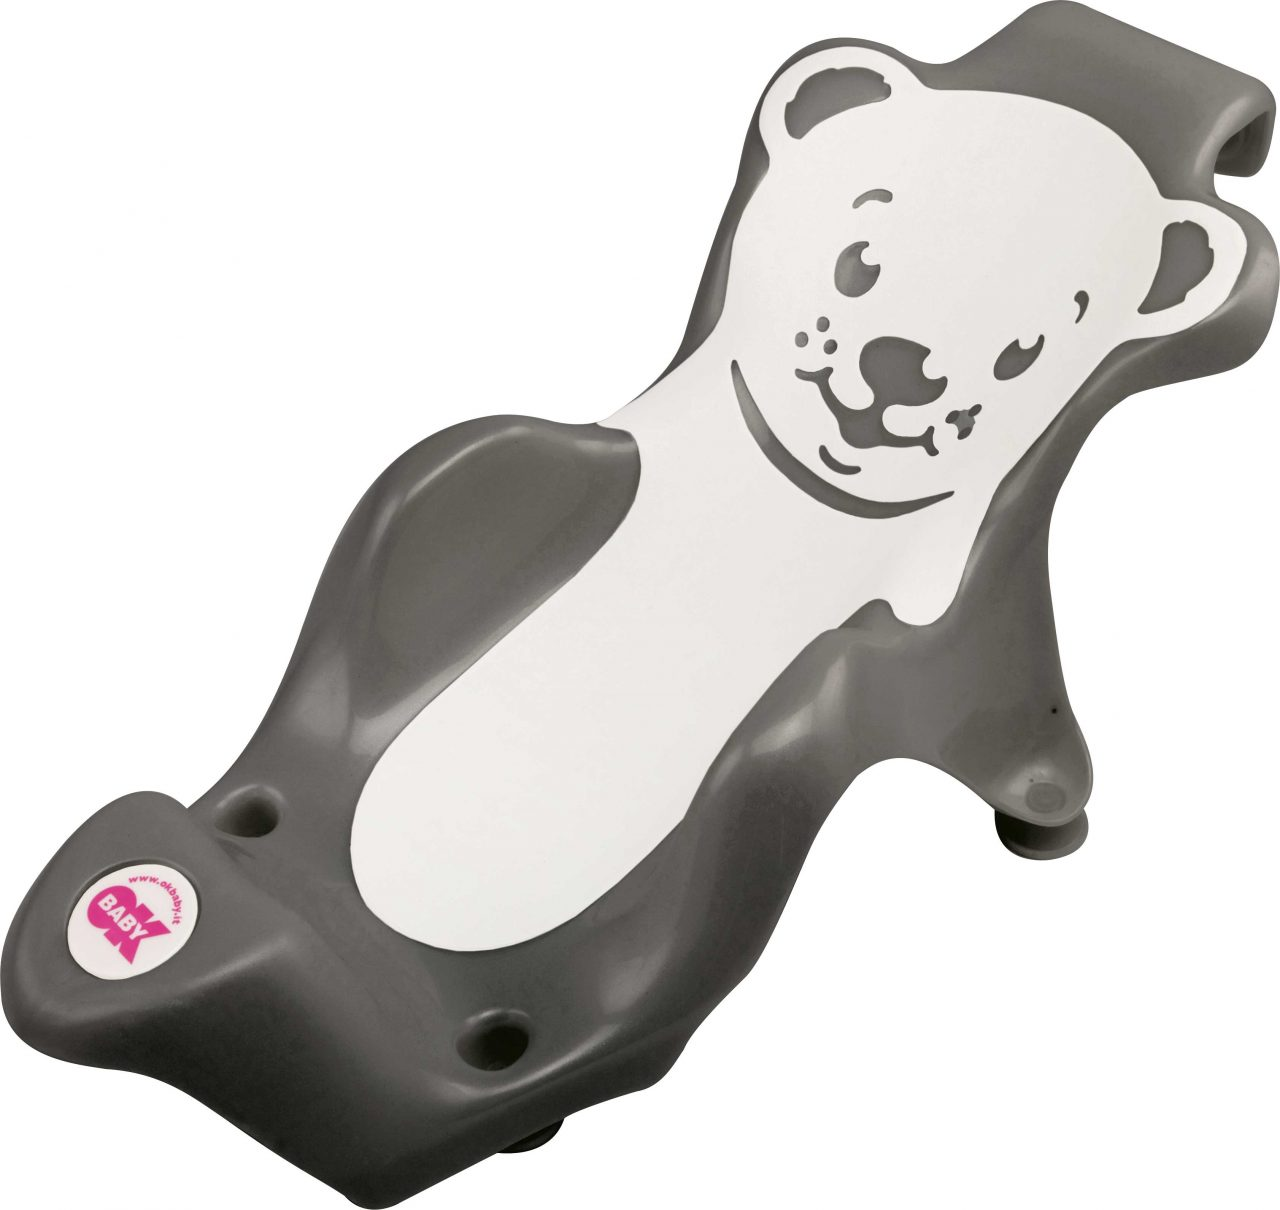 Bath support Buddy Anthracite